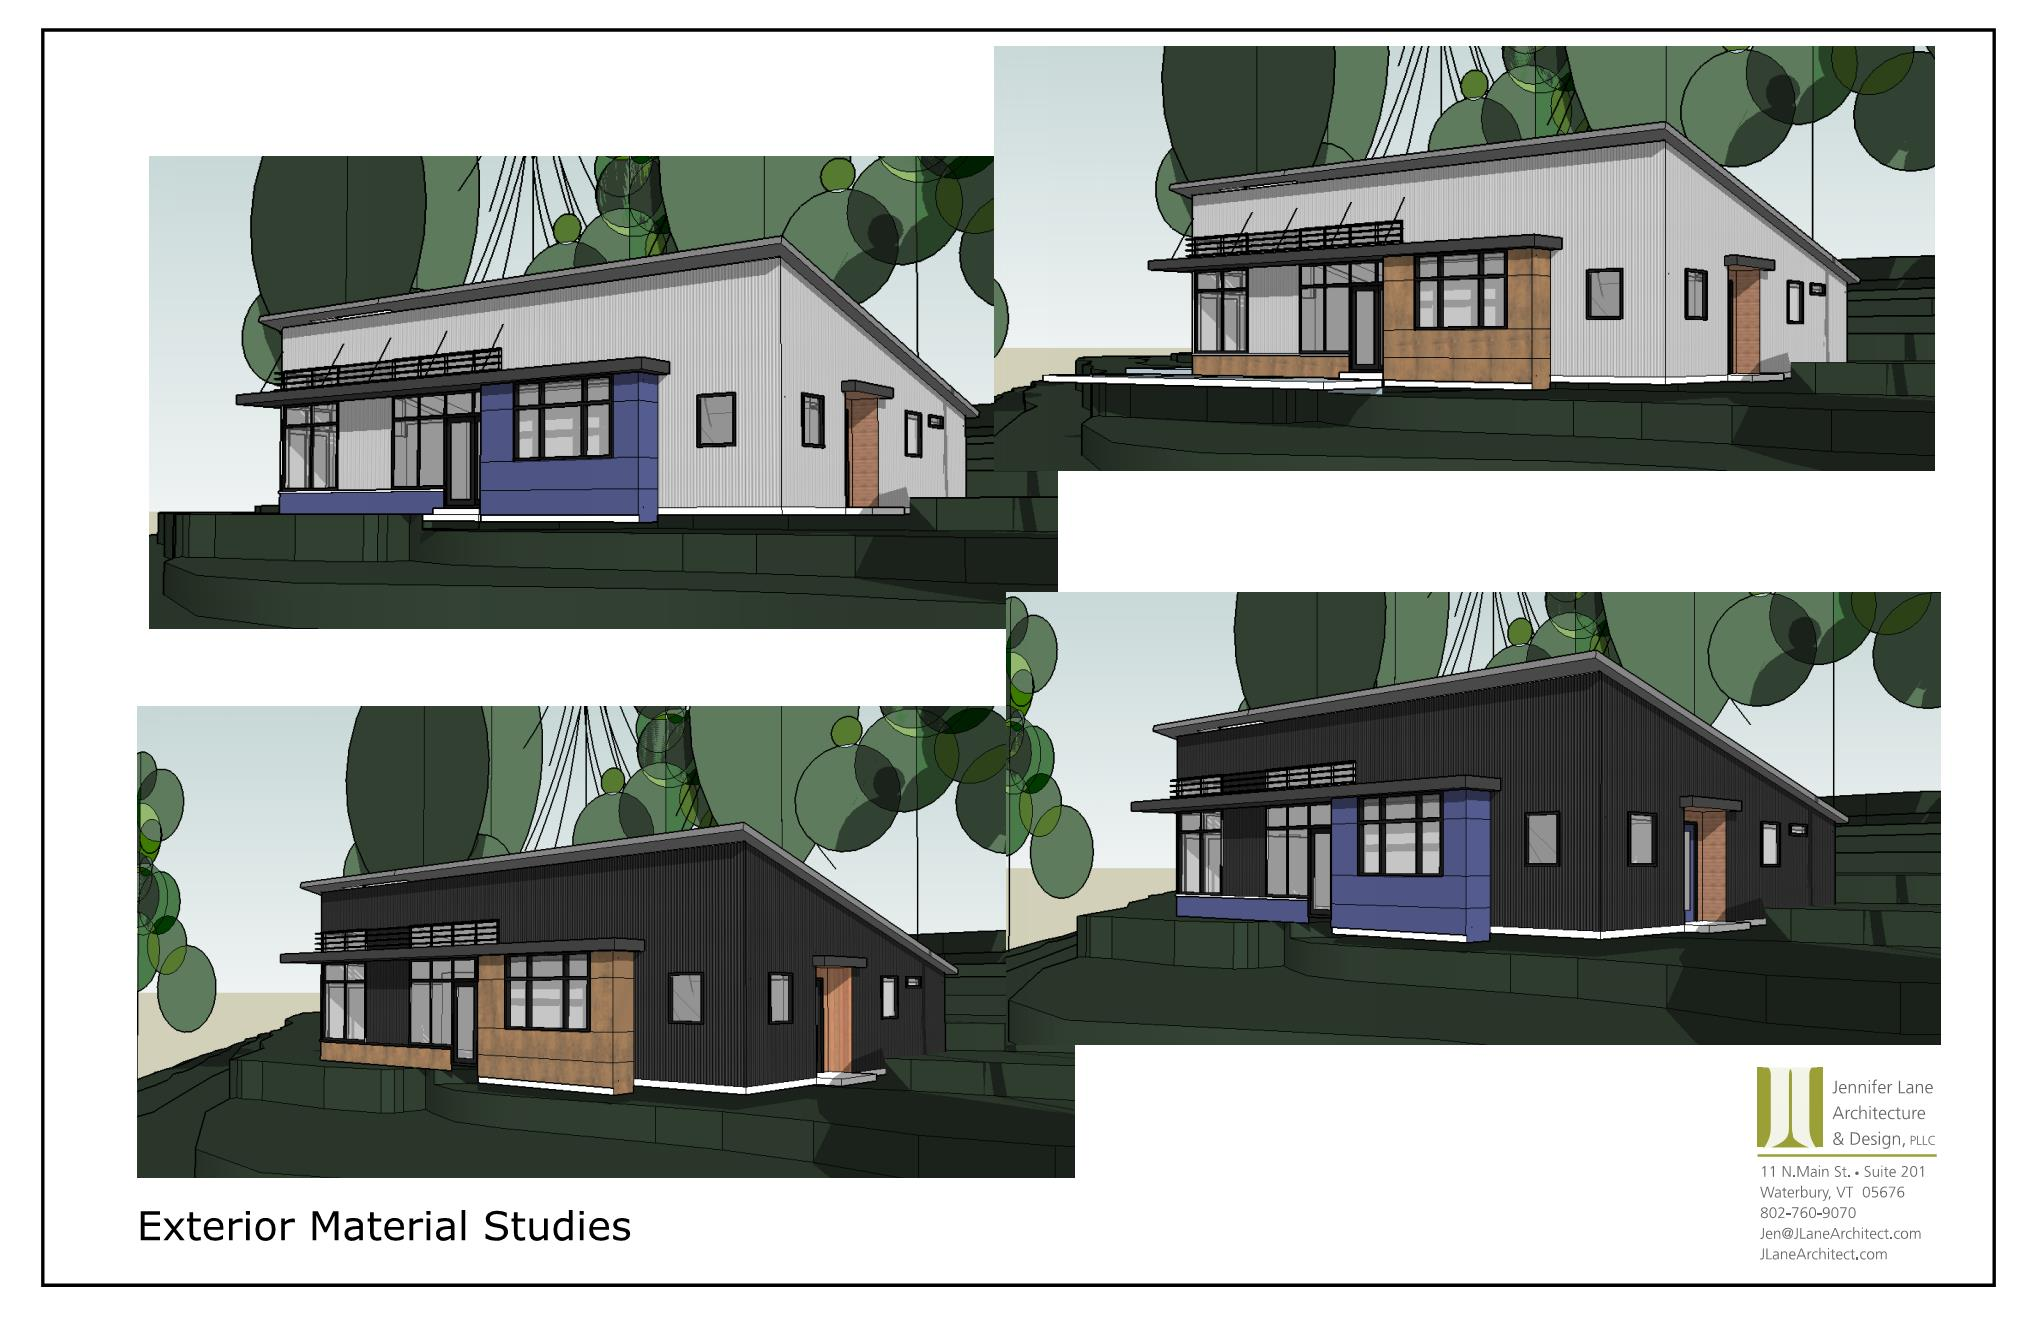 exterior material studies- website.jpg